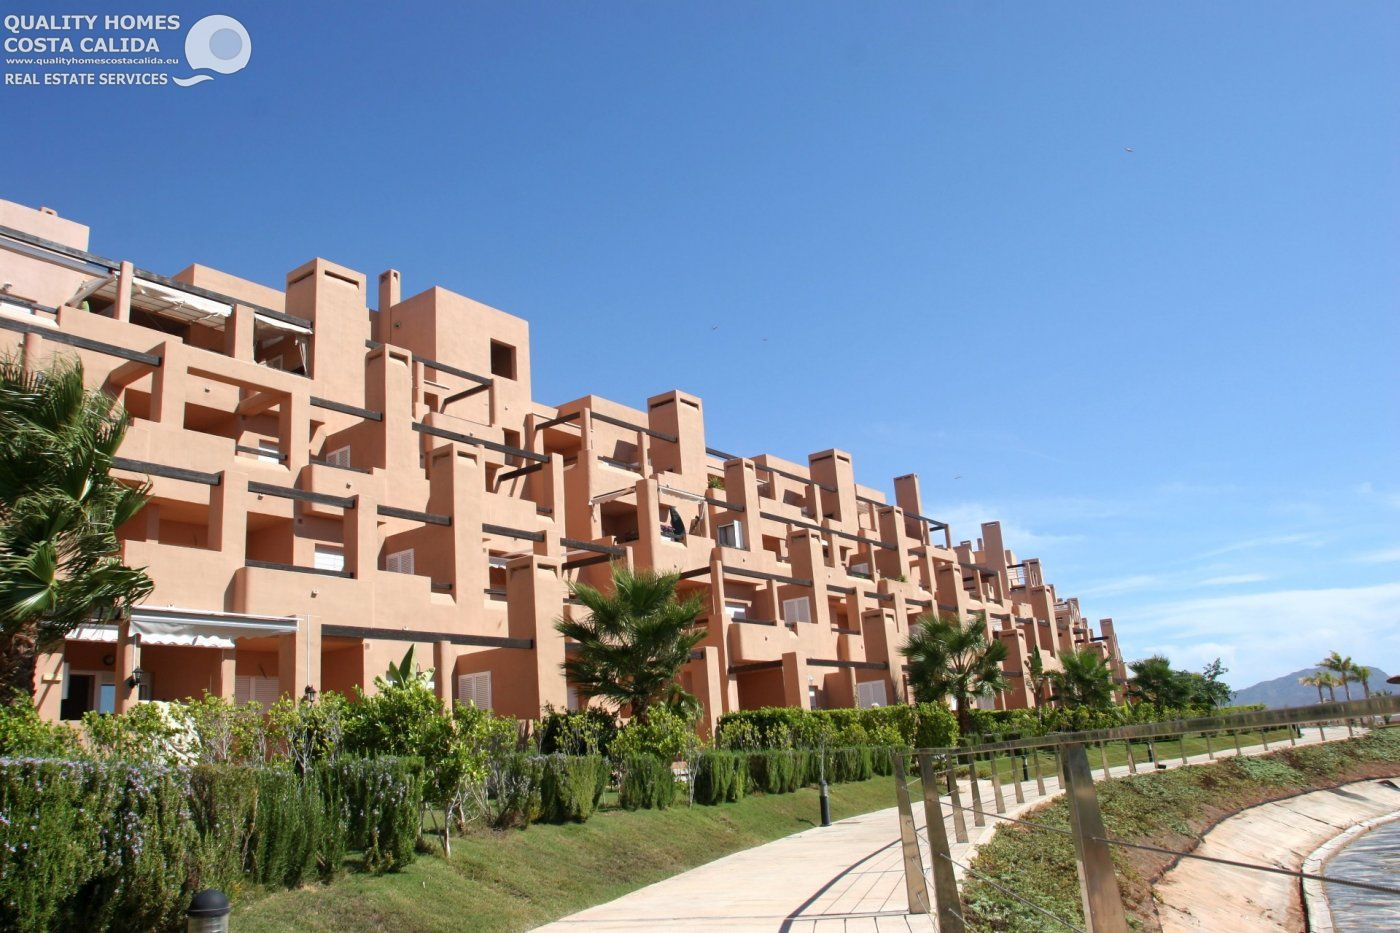 Gallery Image 12 of NEW BANK RELEASE - New 2 Bedroom Apartments at La Isla del Condado For Sale from €53,100